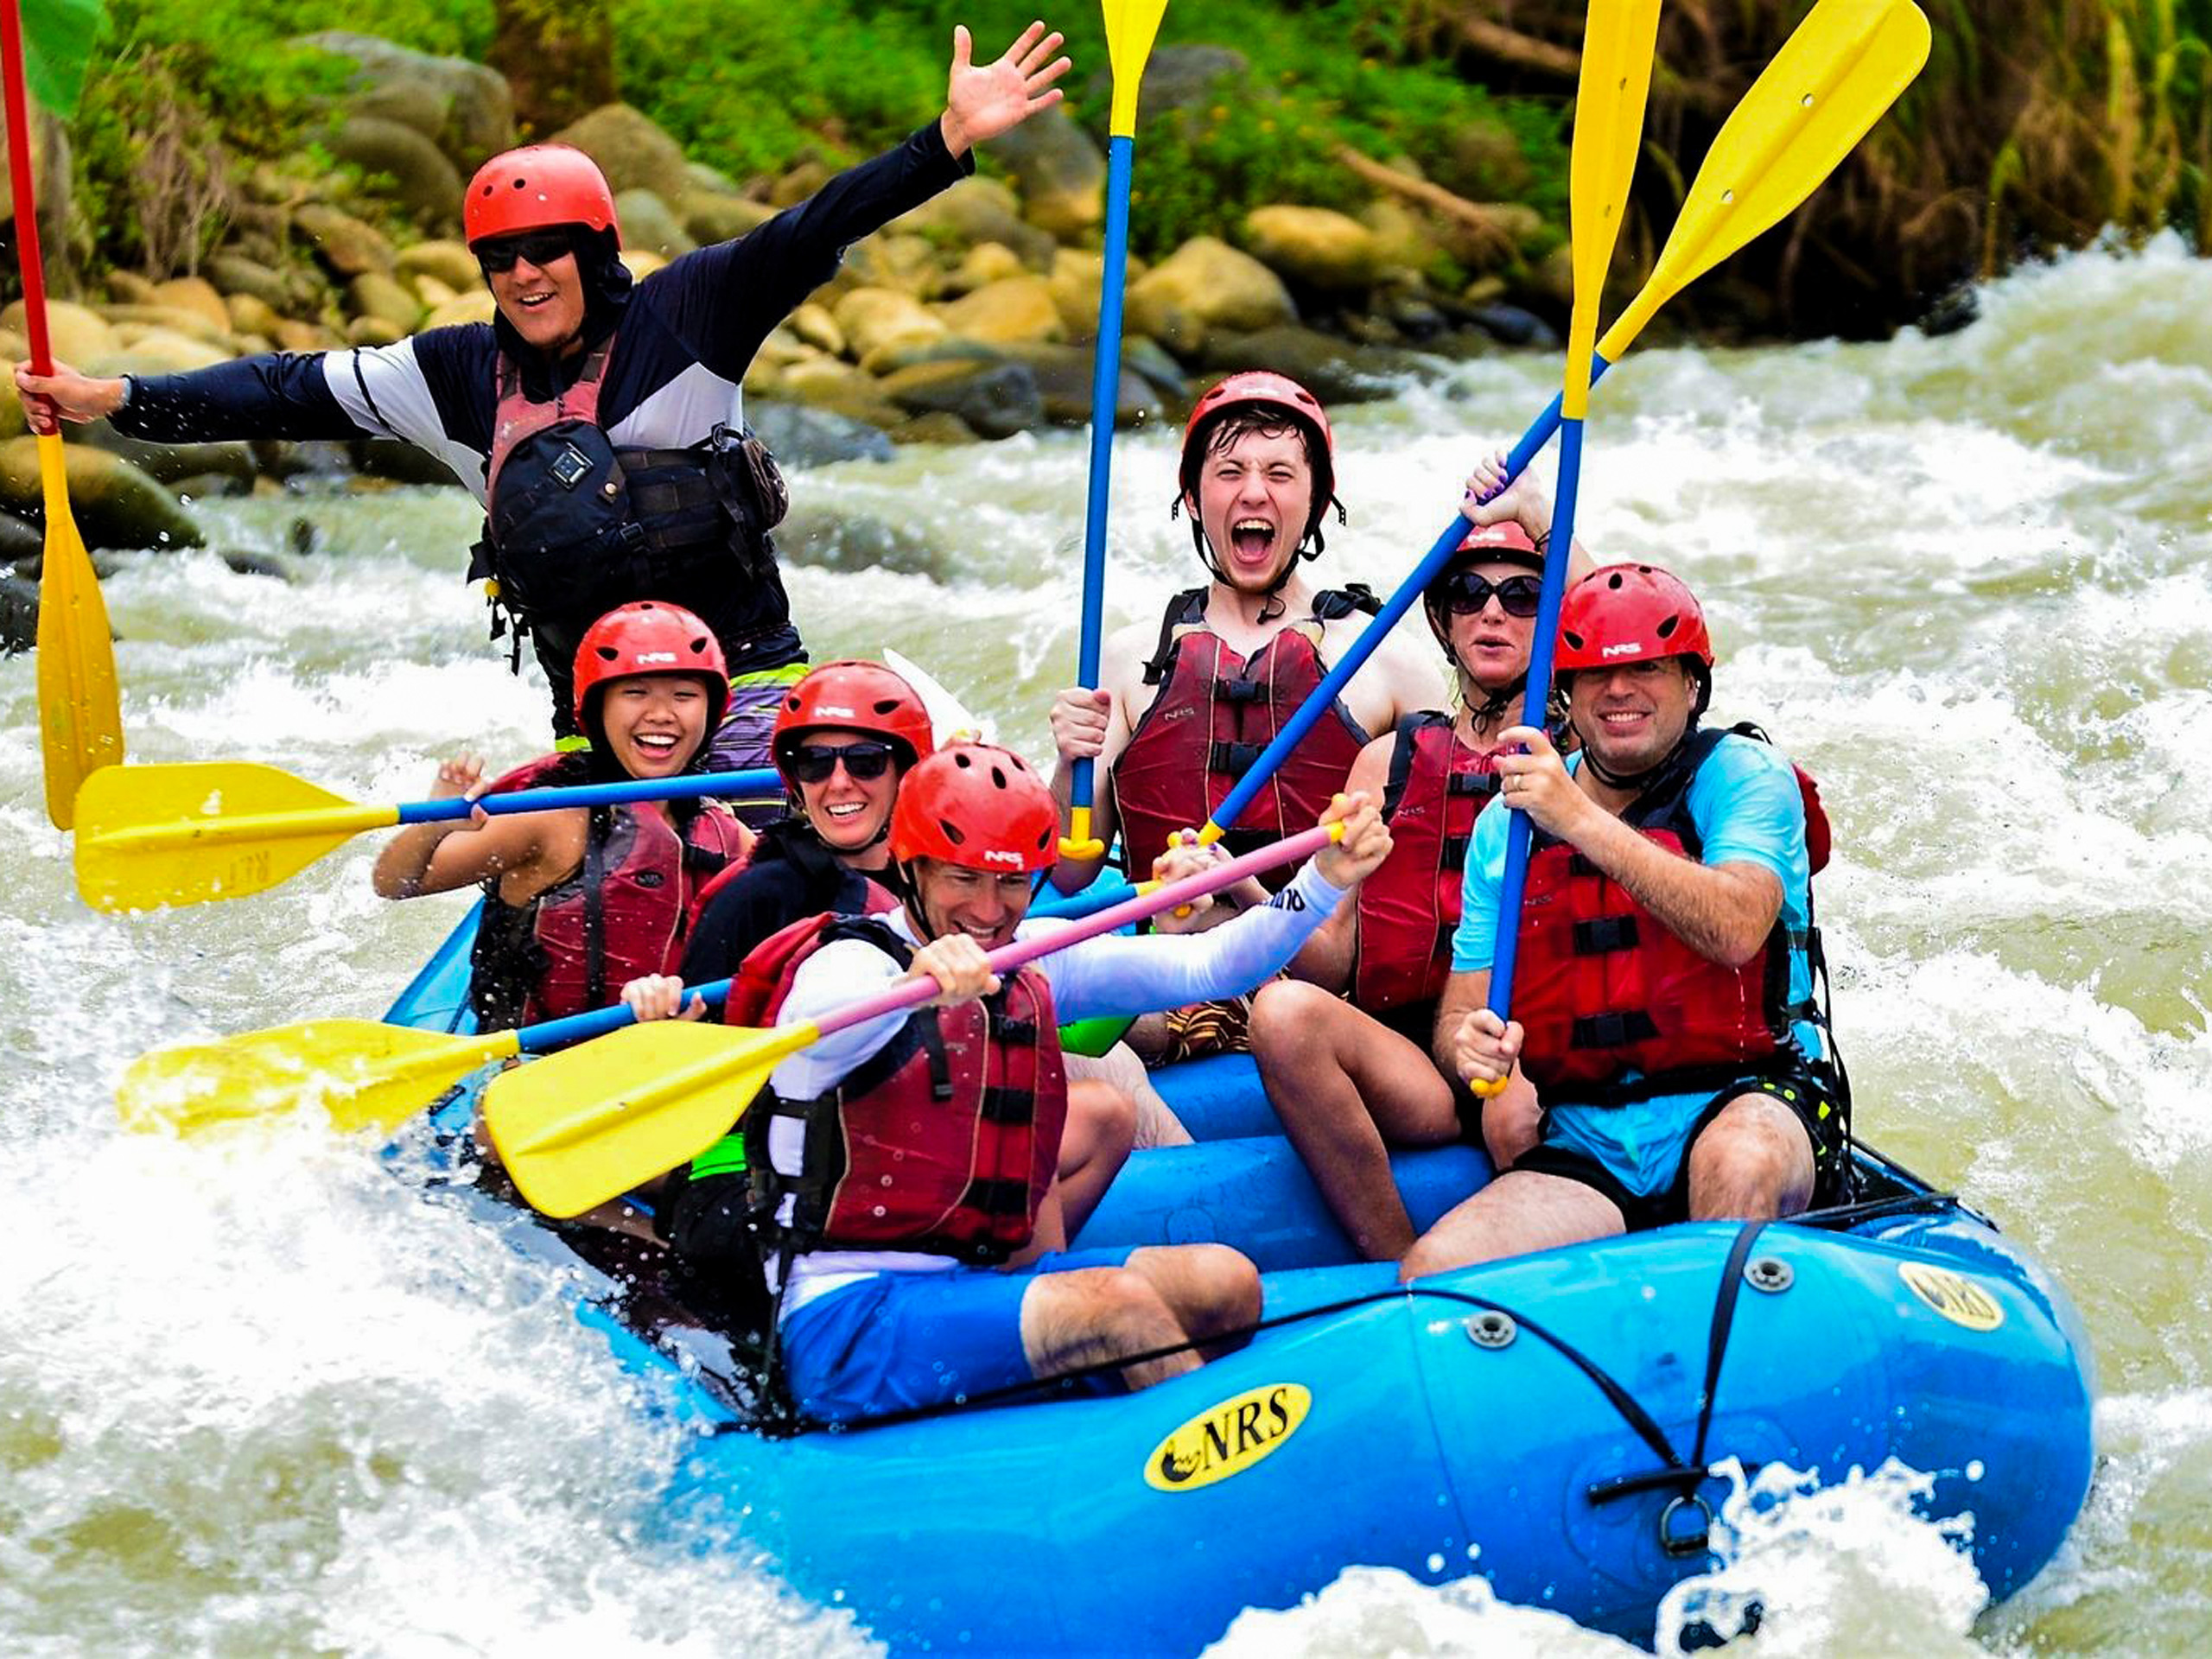 Extreme rafting on a rocky river